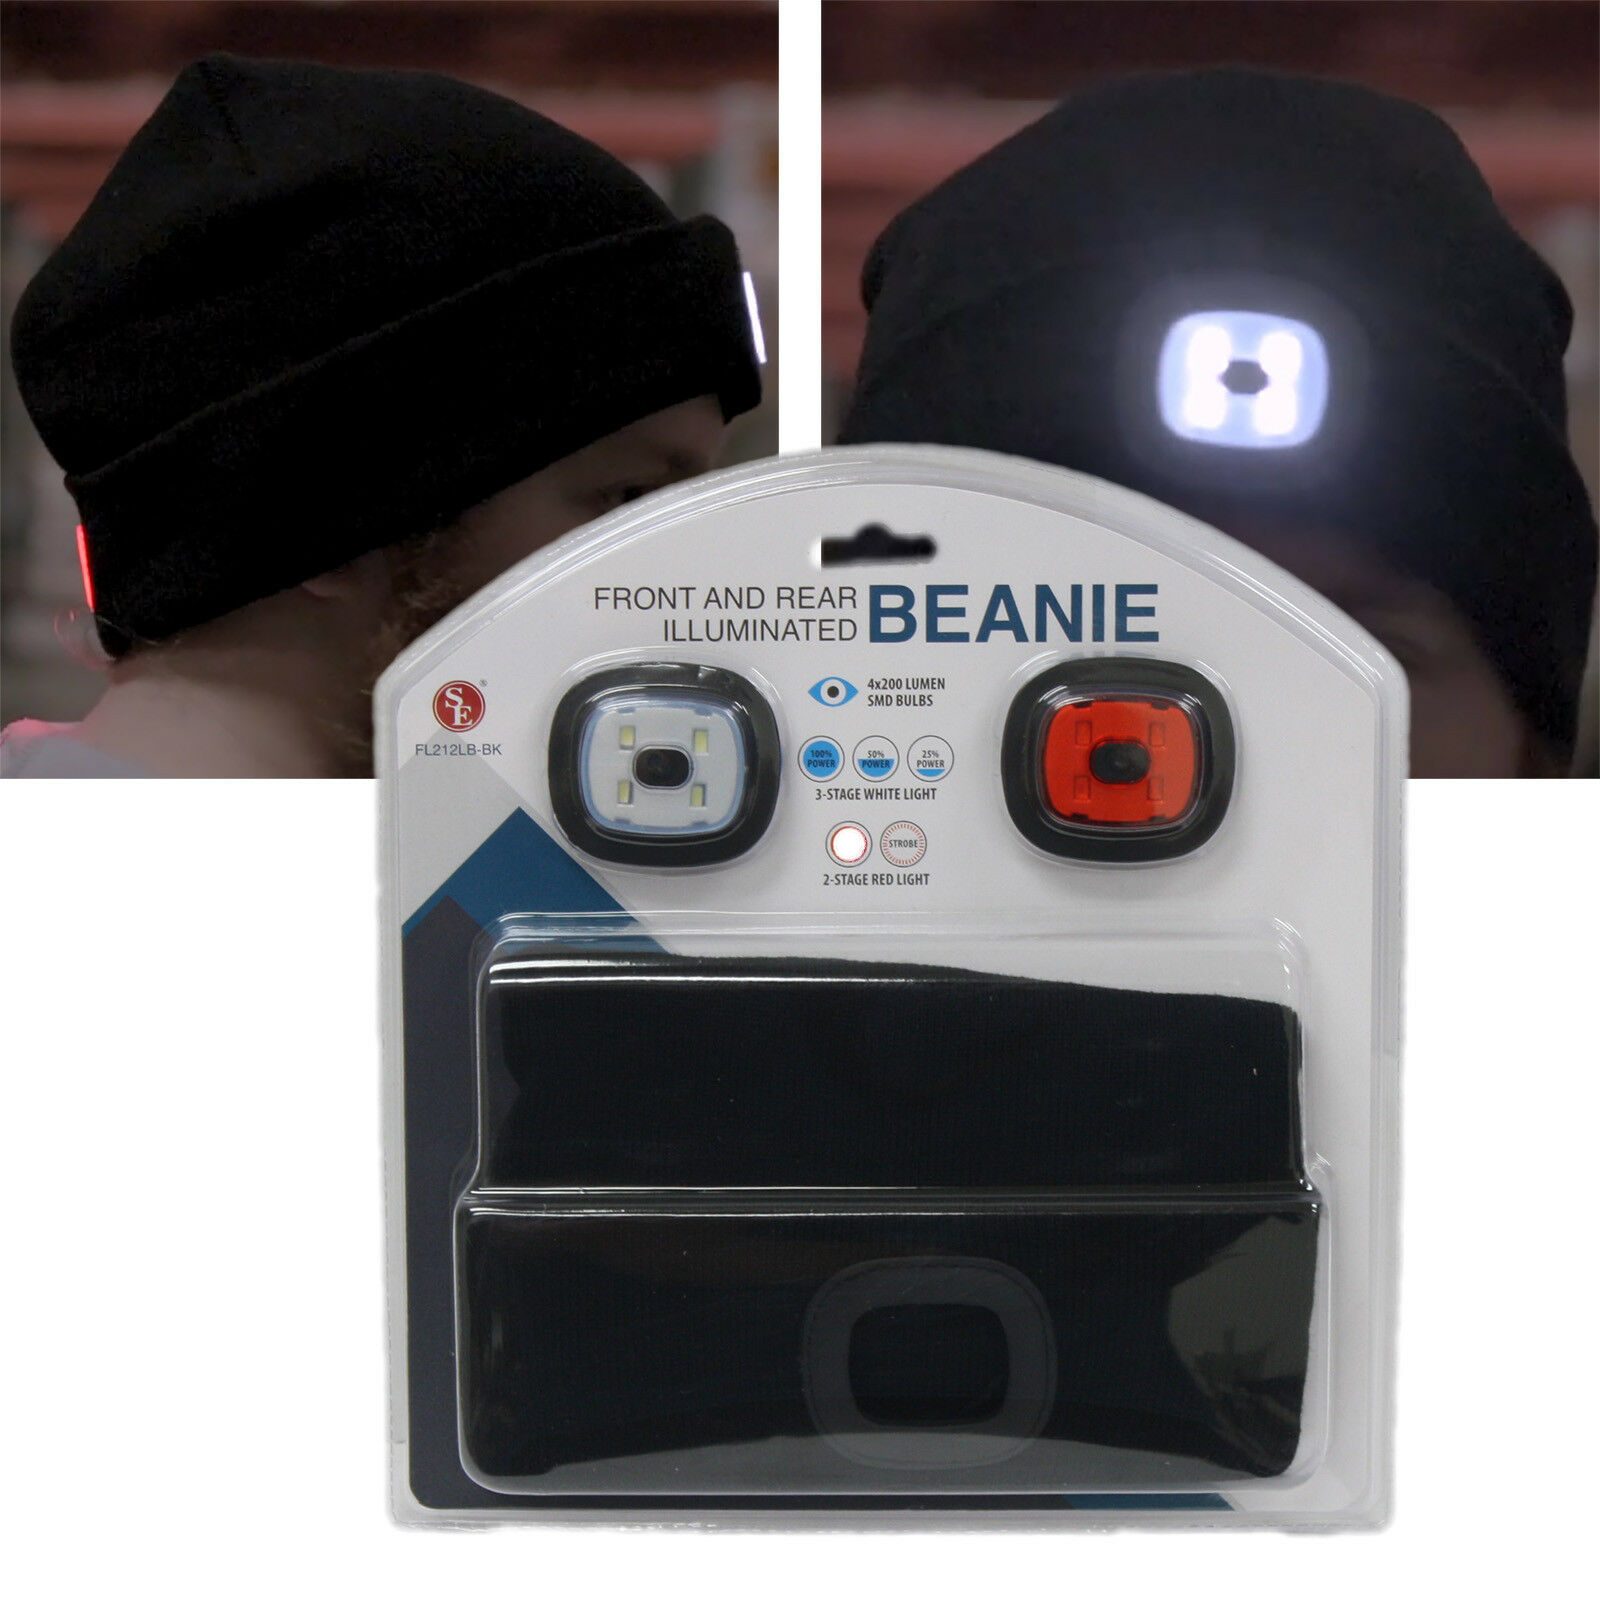 200 Lumen Front Rear Illuminated Beanie Flashlight White Red 4x200 Lumen Led Hat Cap Blk